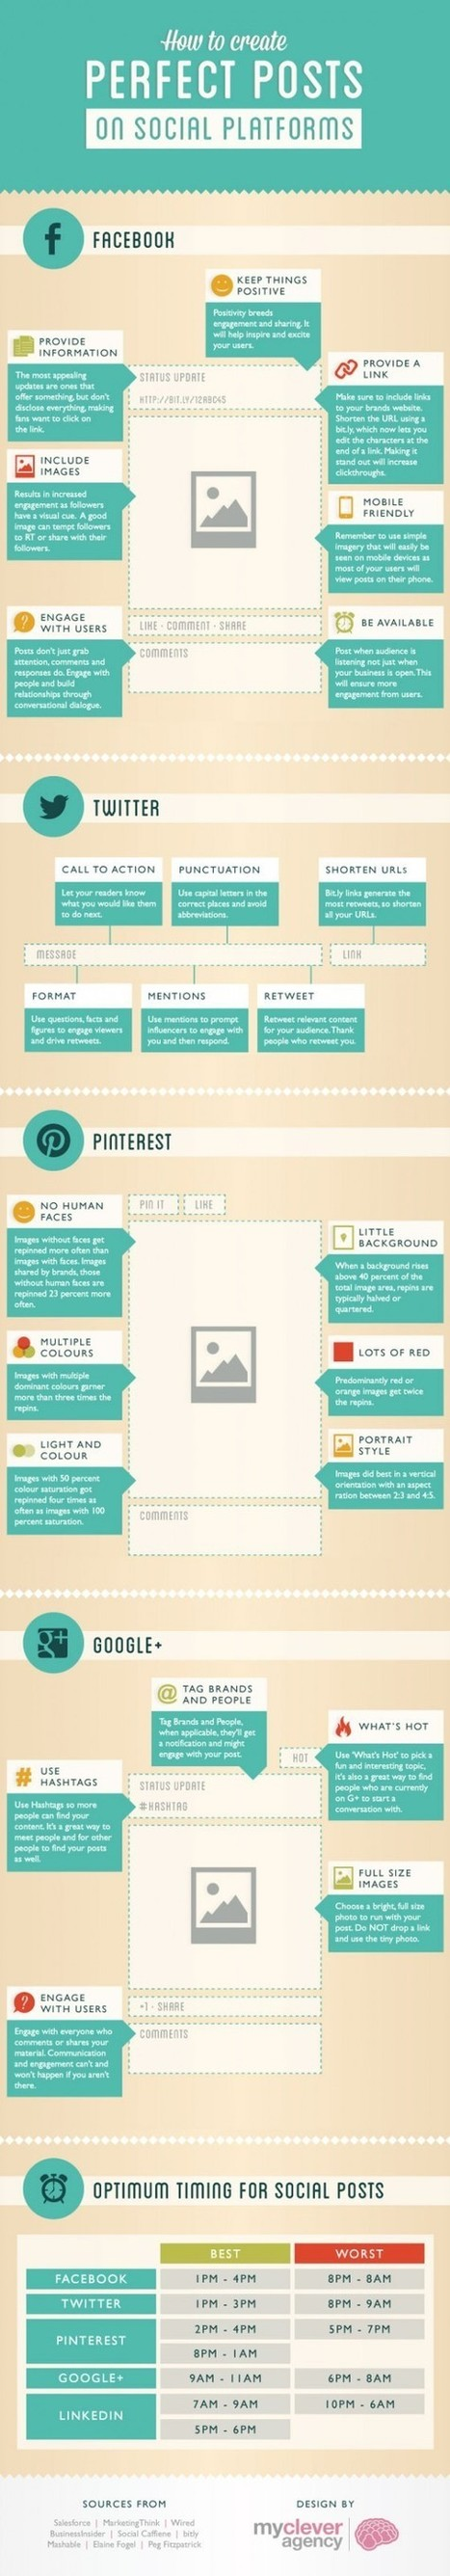 Comment Publier Efficacement sur Facebook, Twitter, Pinterest et Google+ ? | Emarketinglicious | Infographies social media | Scoop.it